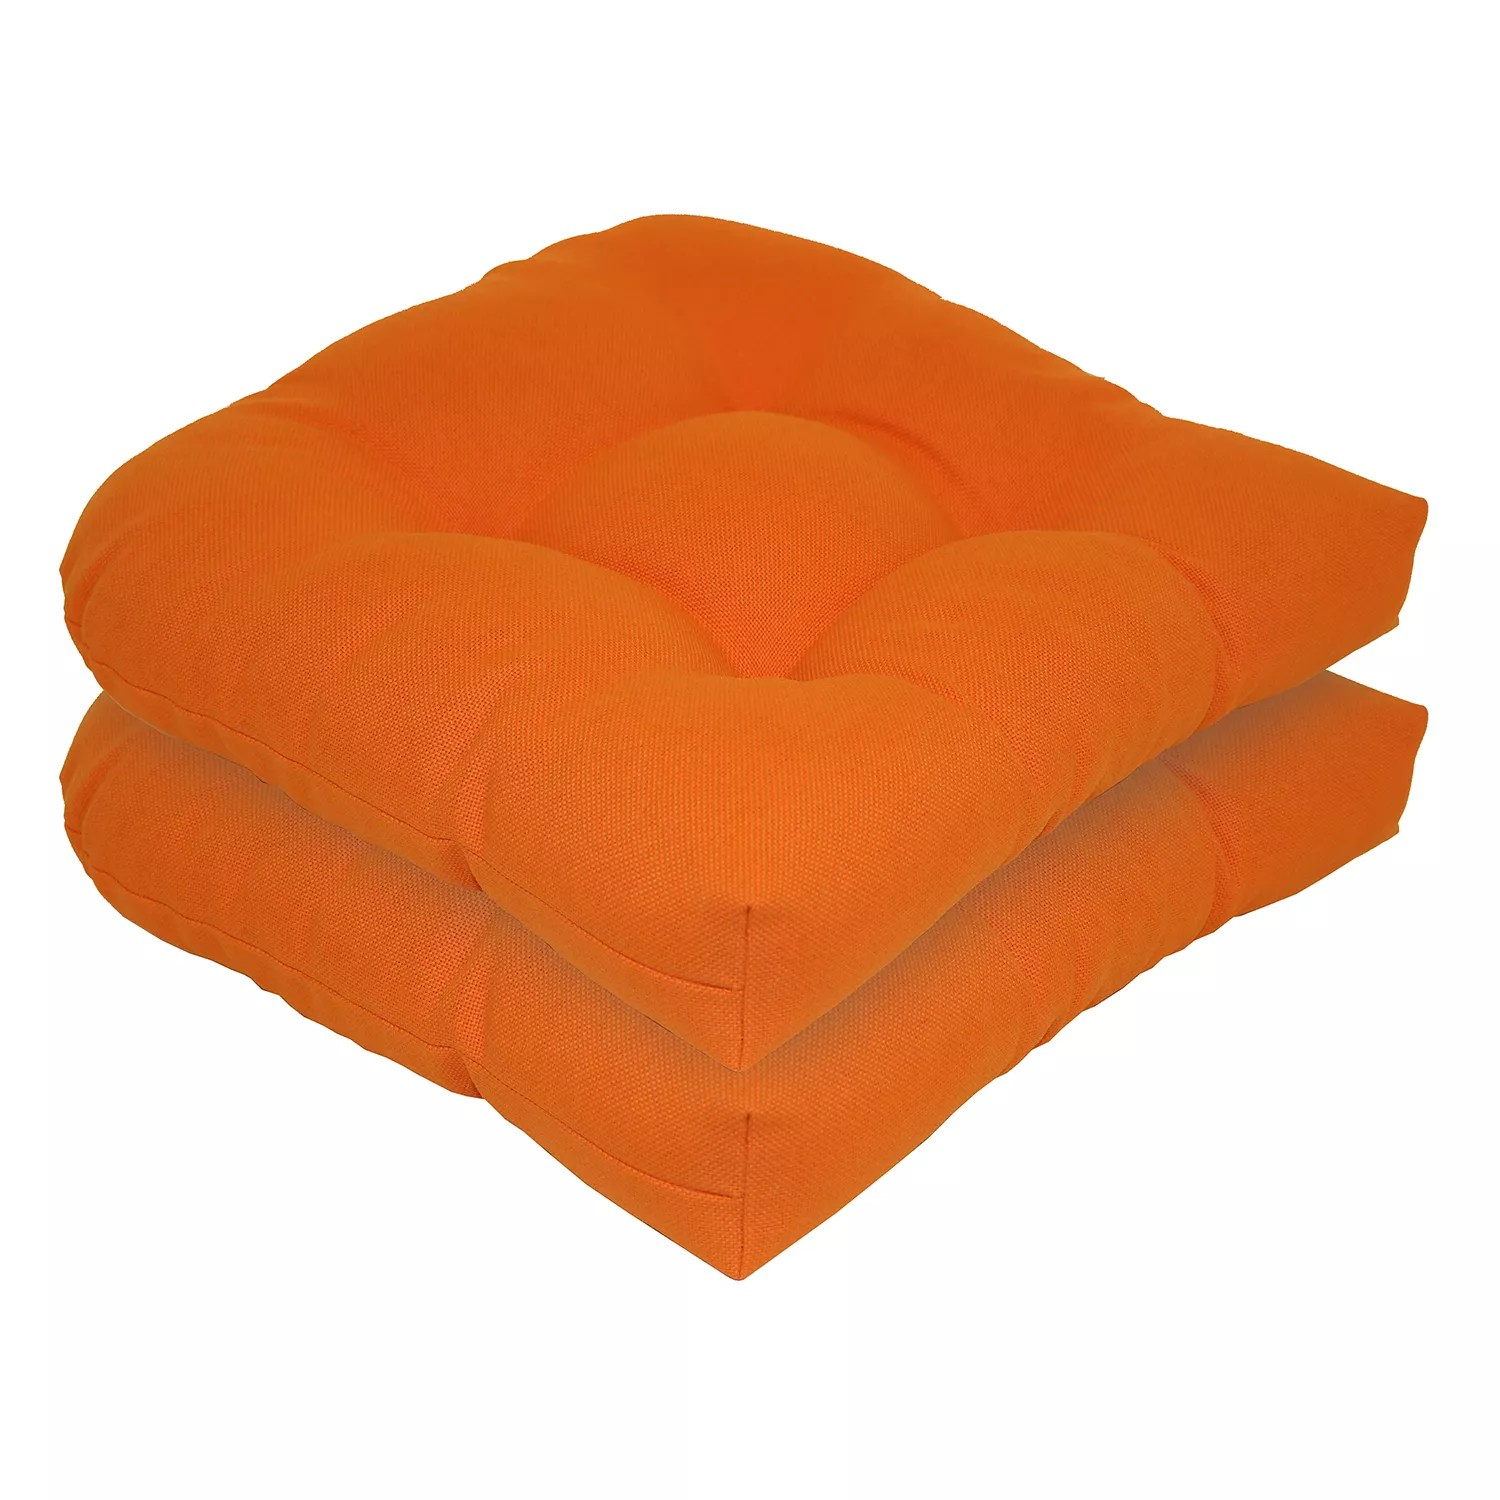 kohls outdoor chair cushions lounge pads orange patio decorative sonoma goods for life 2 piece indoor reversible u